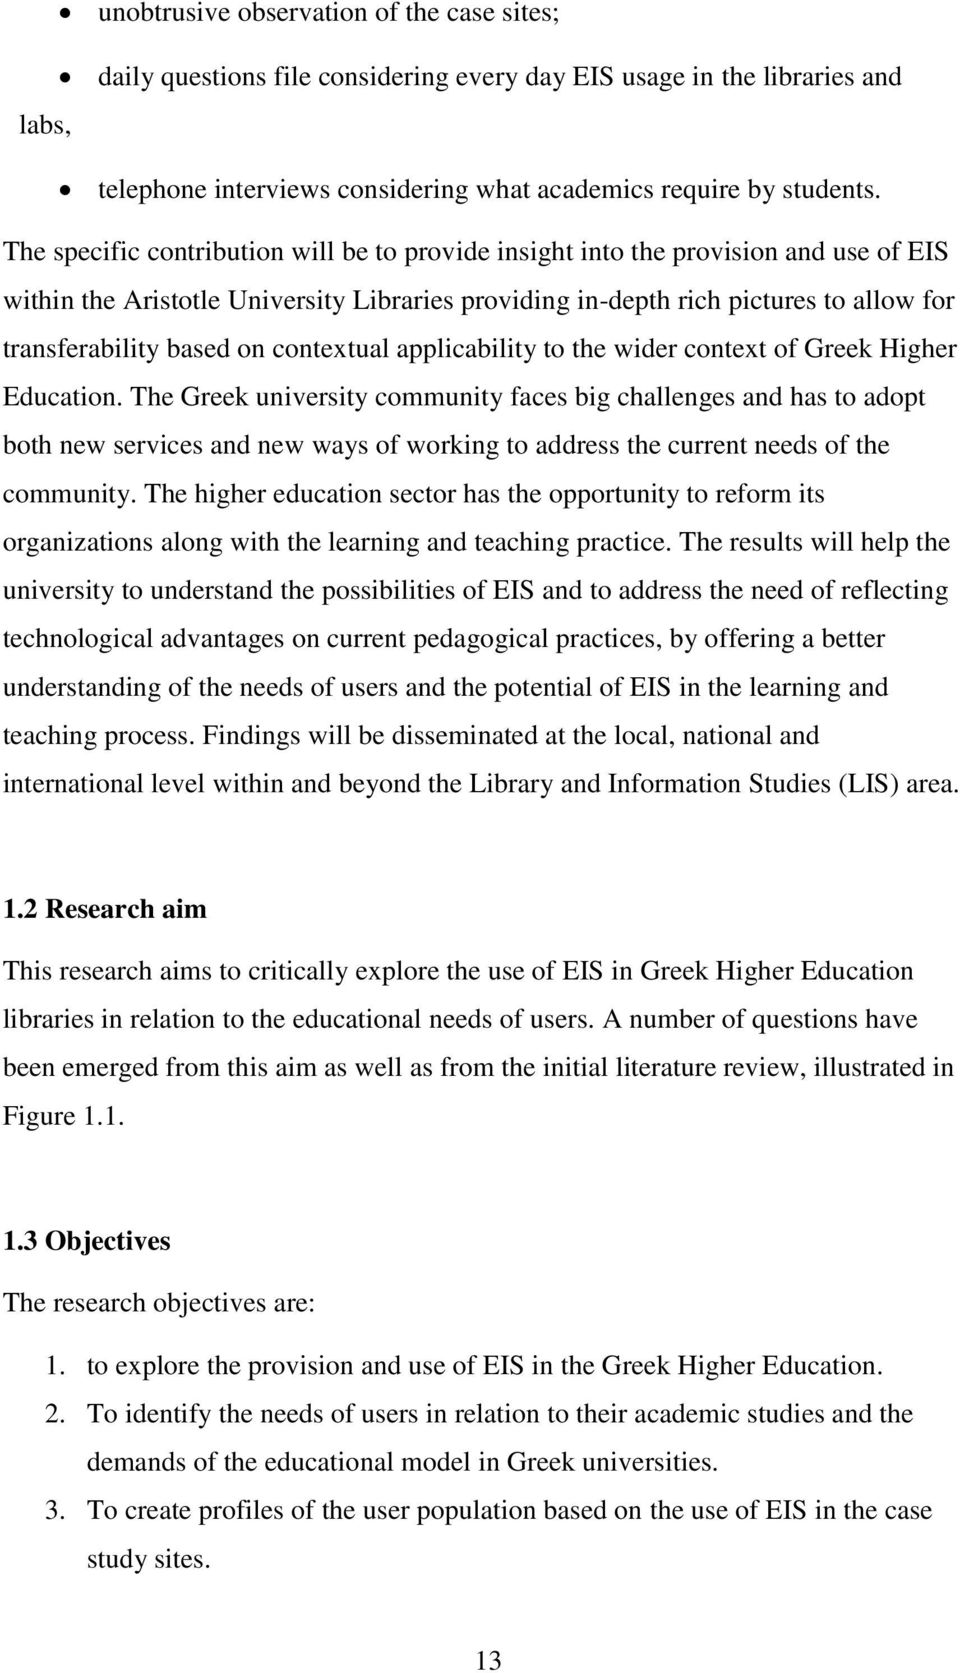 contextual applicability to the wider context of Greek Higher Education.